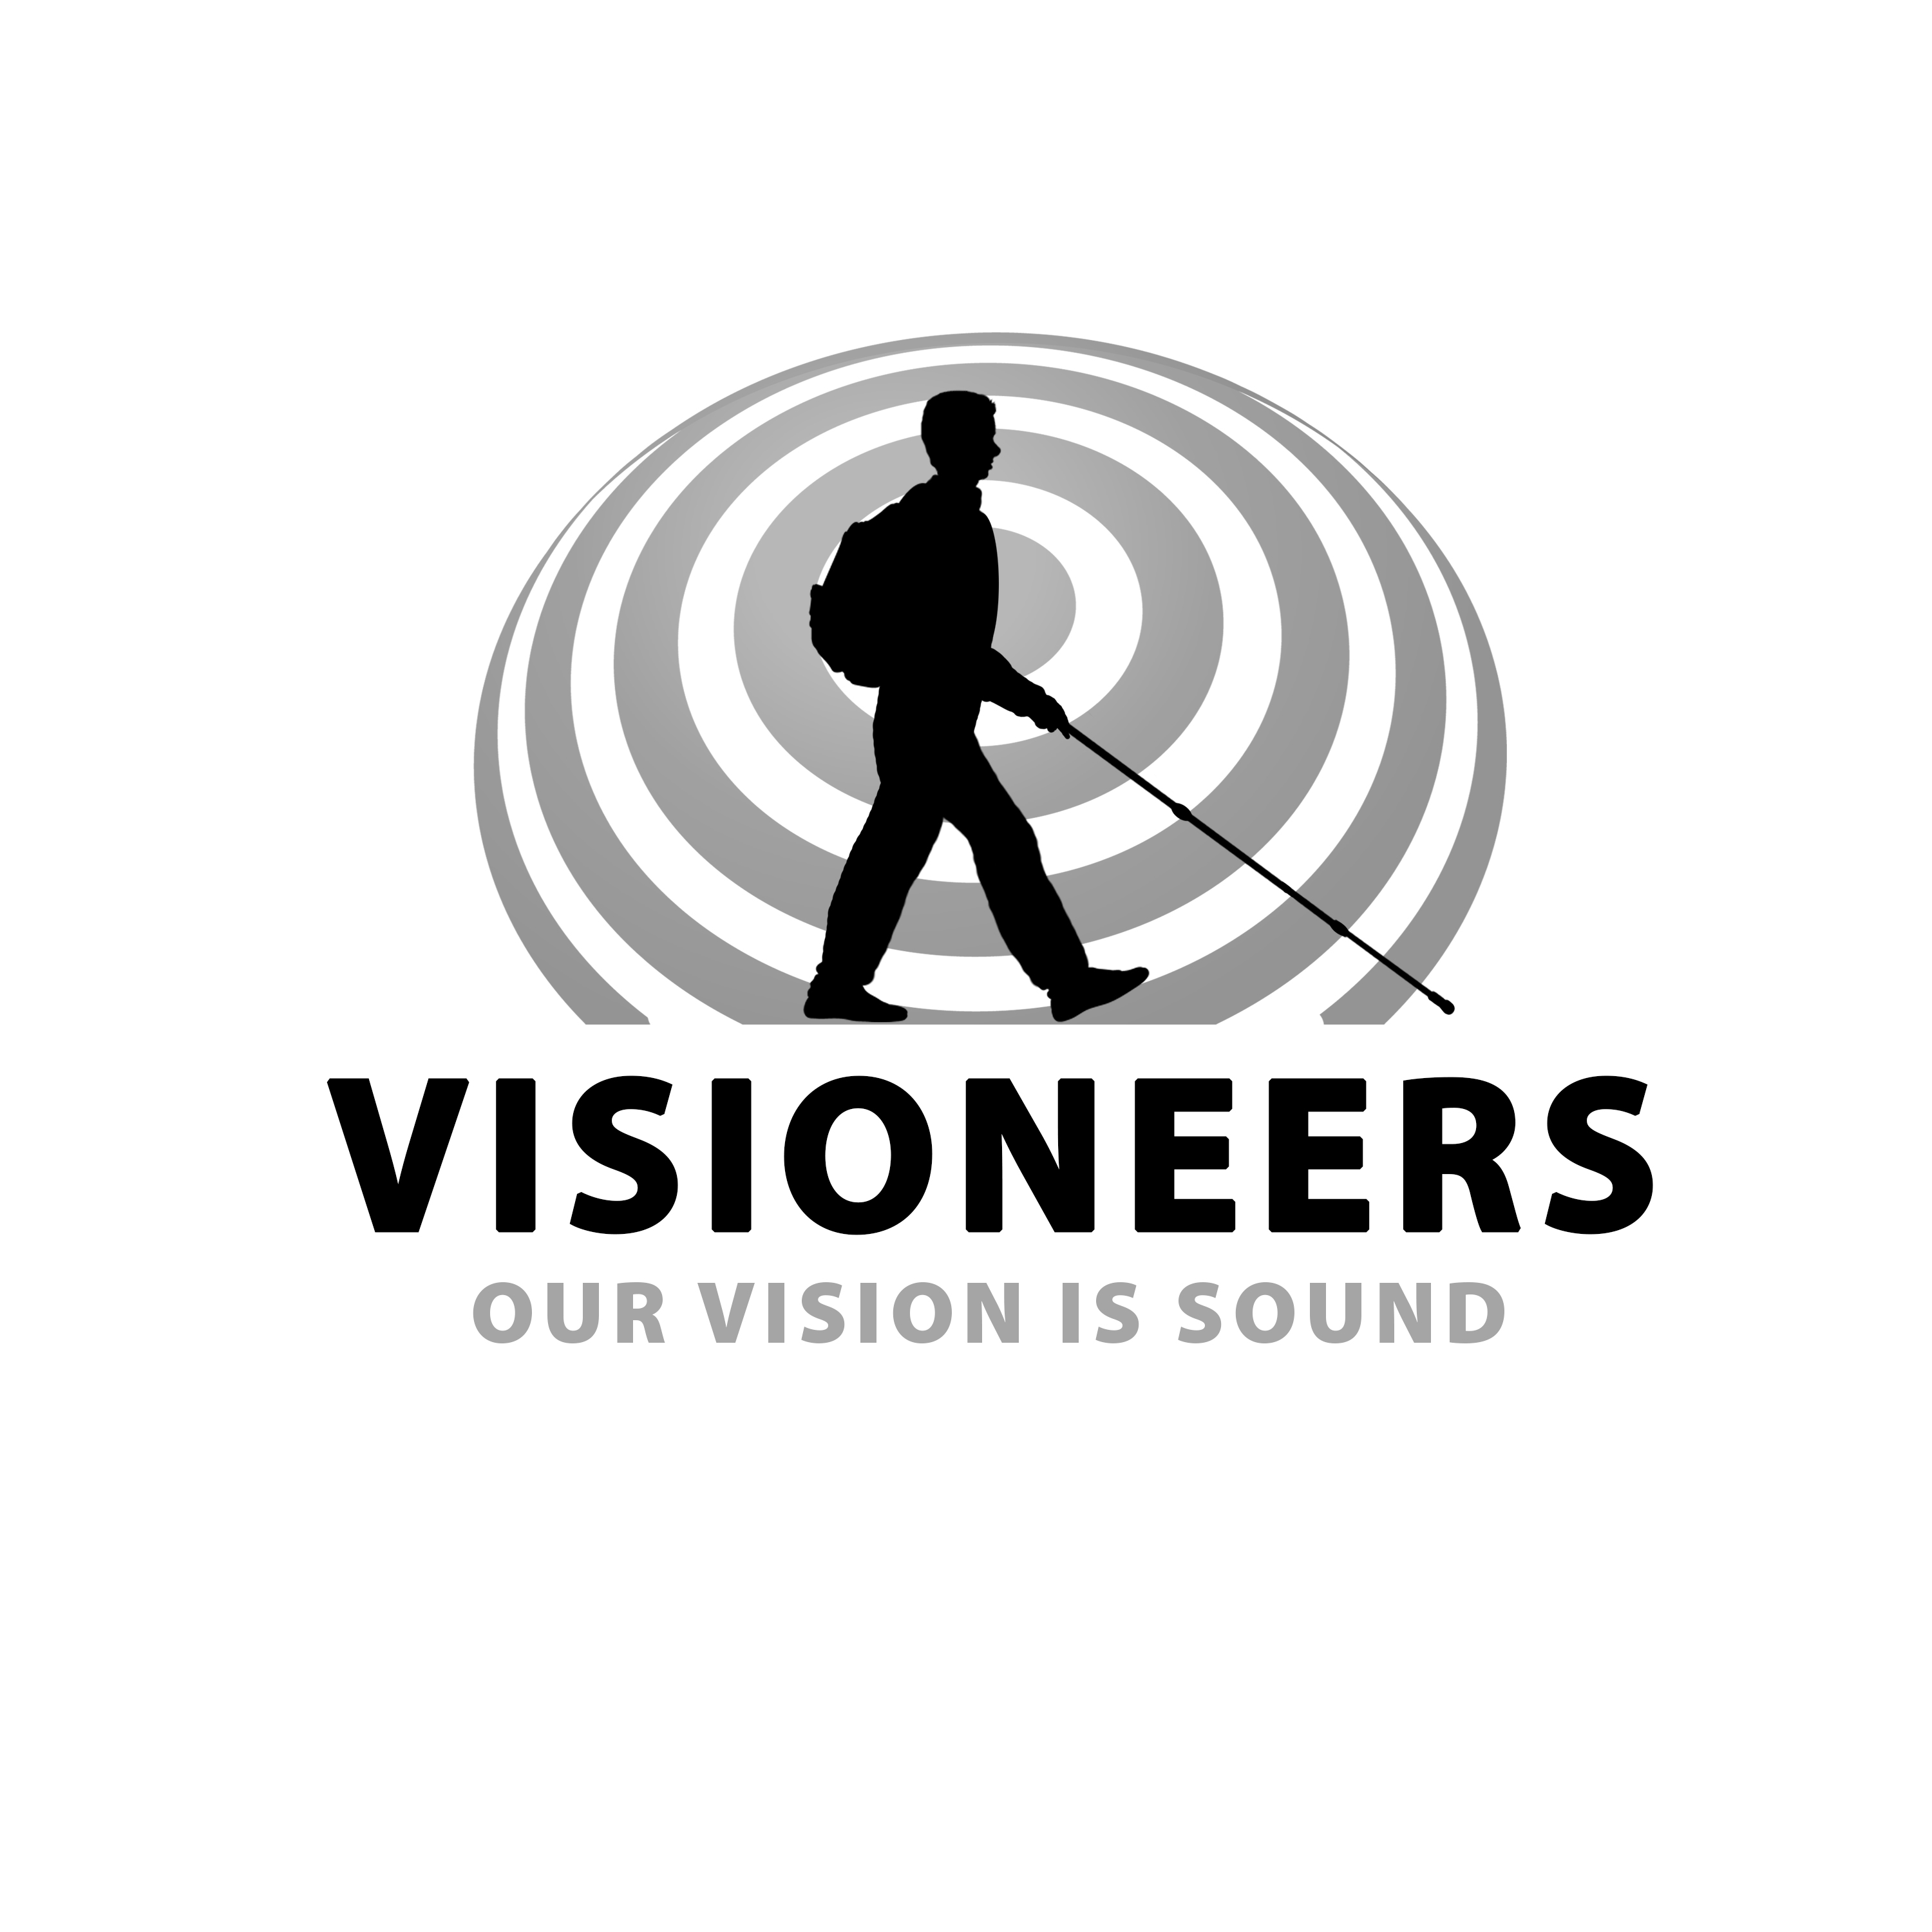 Visioneers 21. Same as previous panel in complete grescale on white background.